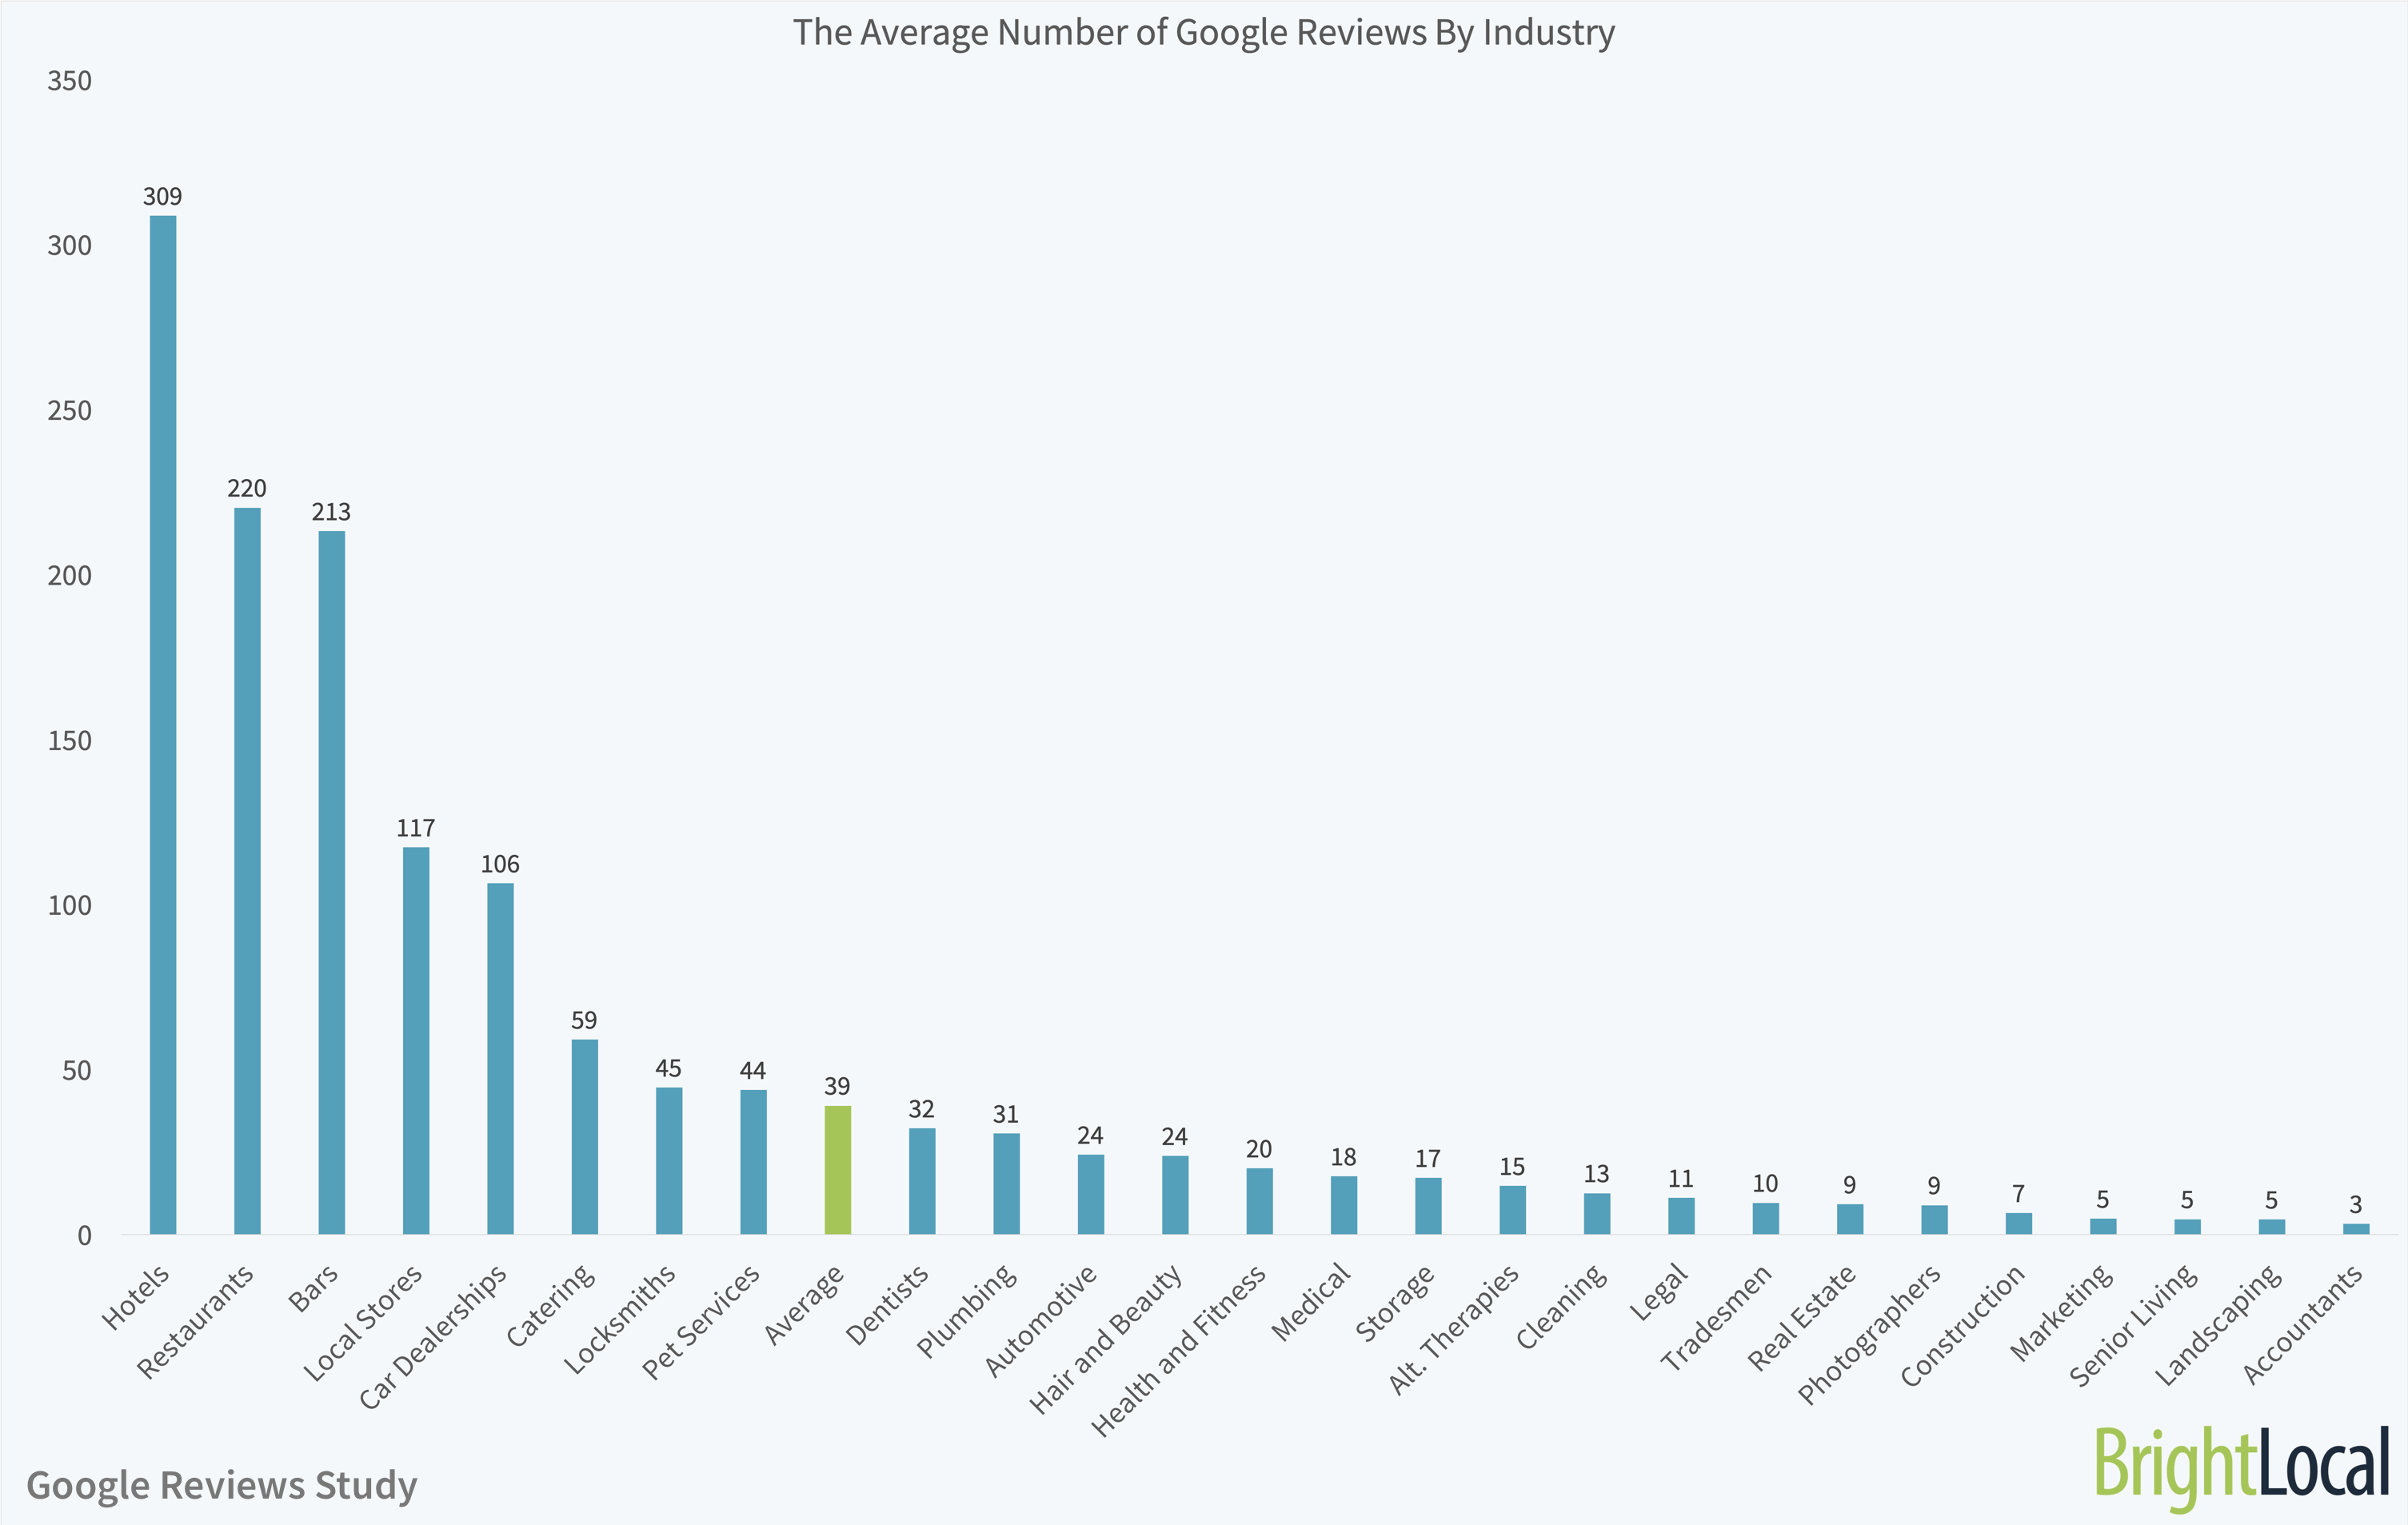 The Average Number of Google Reviews By Industry